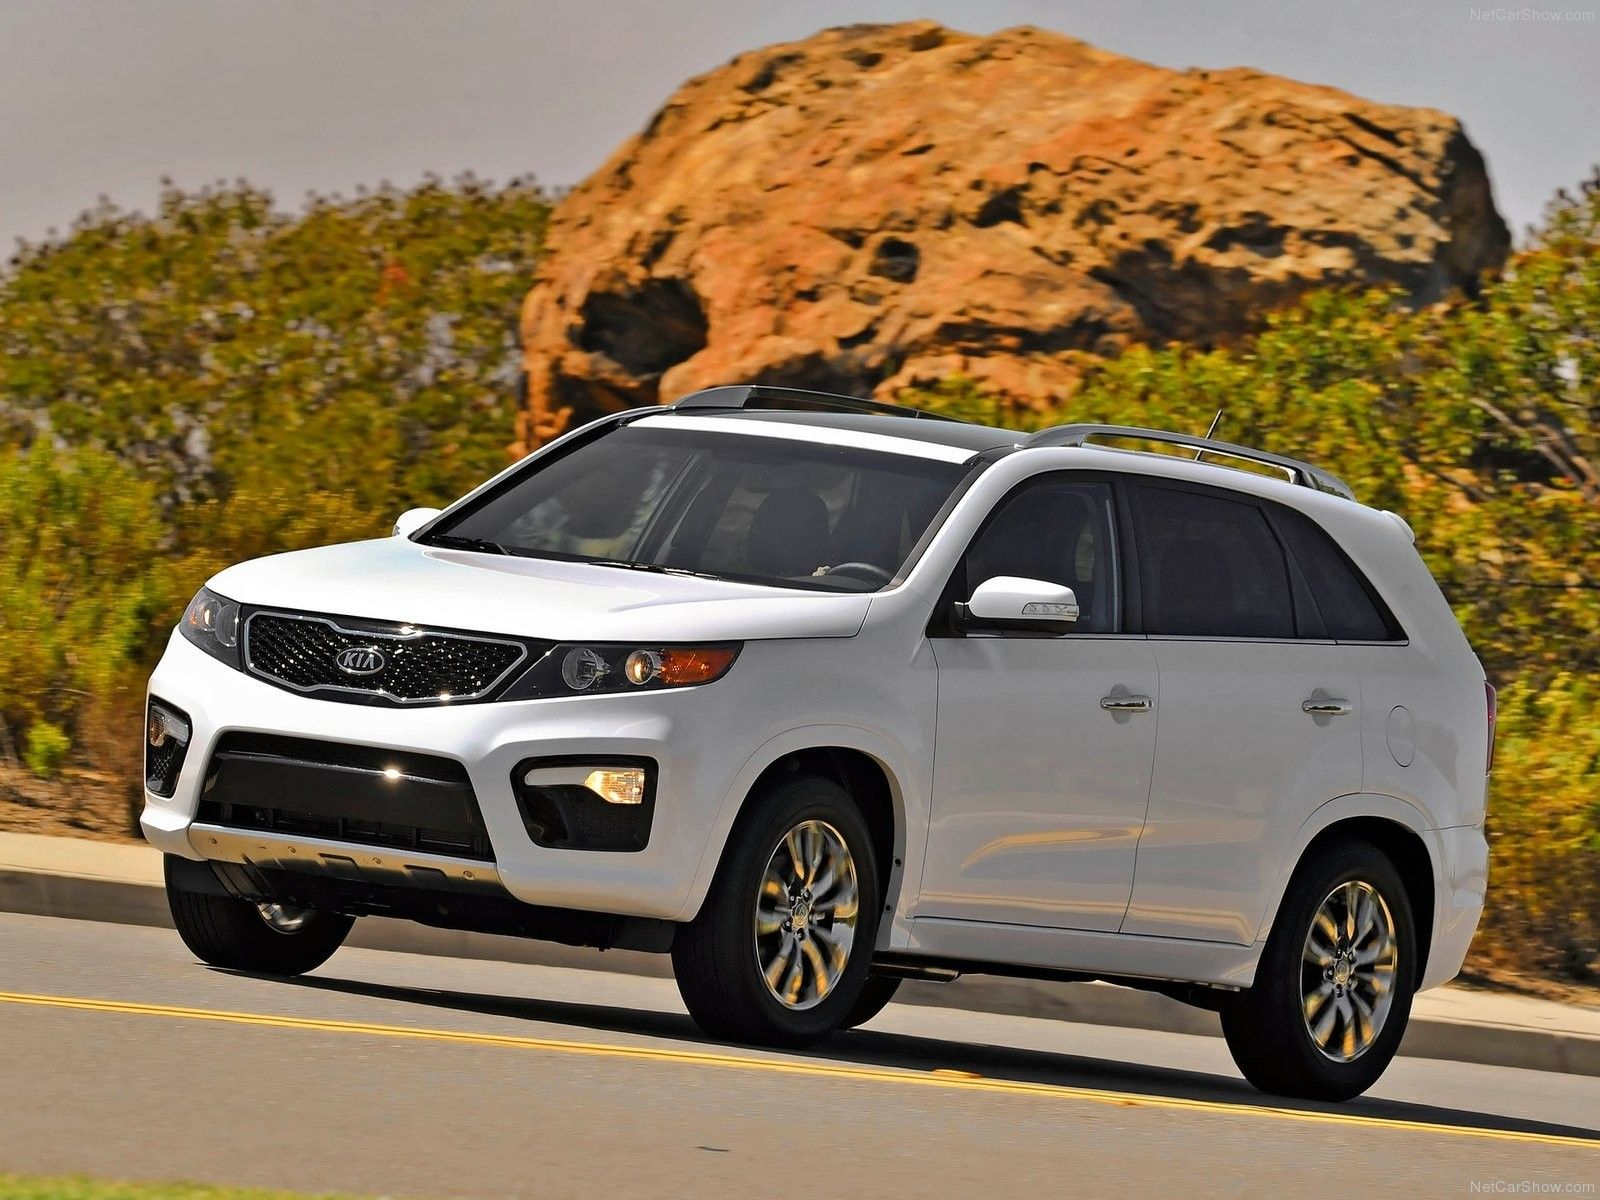 Kia 4x4 auto 2013 (1600x1200, auto) via www.allwallpaper.in ...